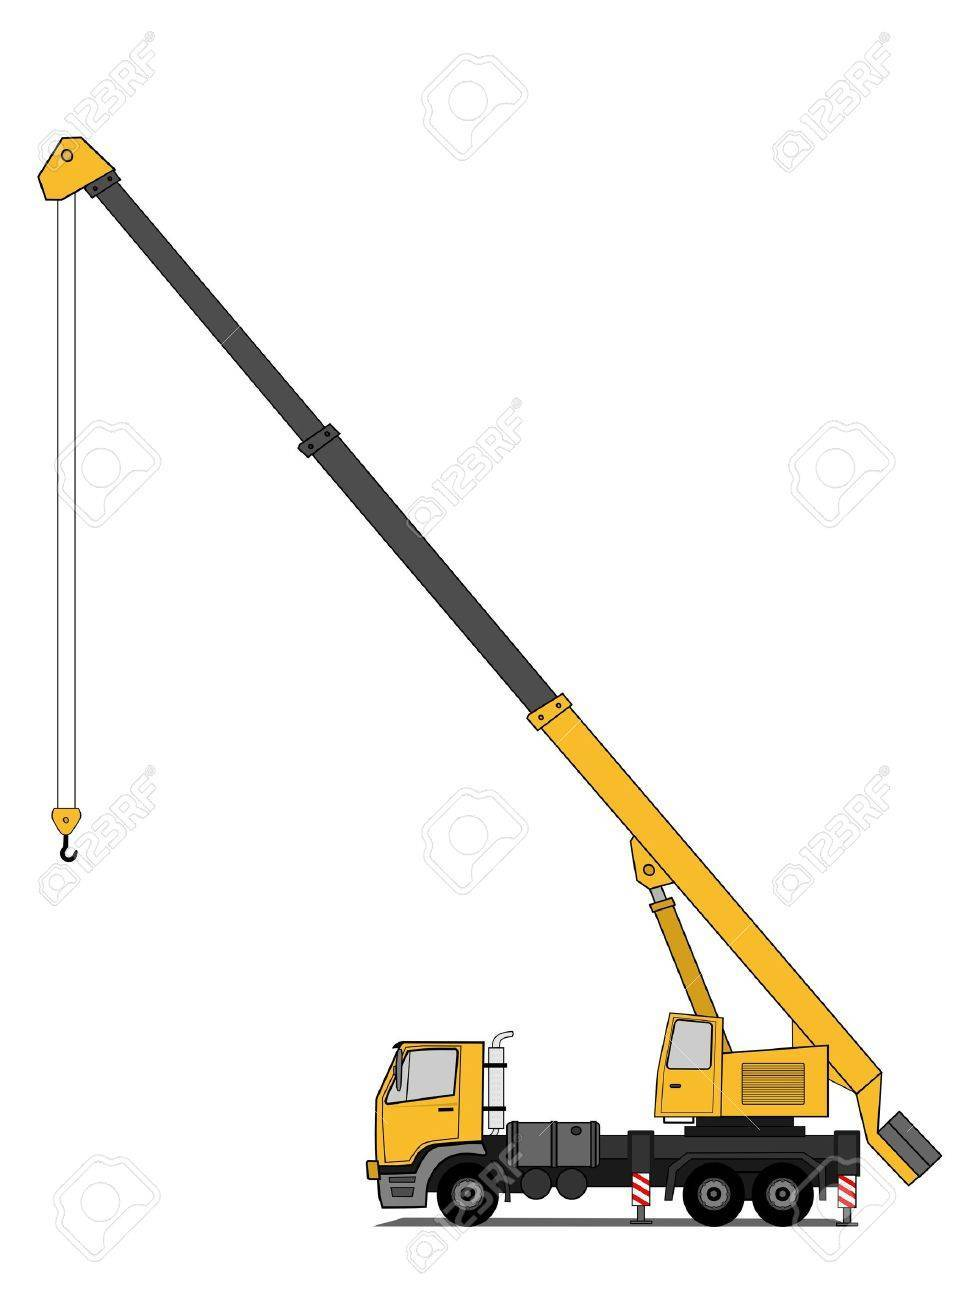 Crane truck clipart svg black and white Crane truck clipart 7 » Clipart Portal svg black and white